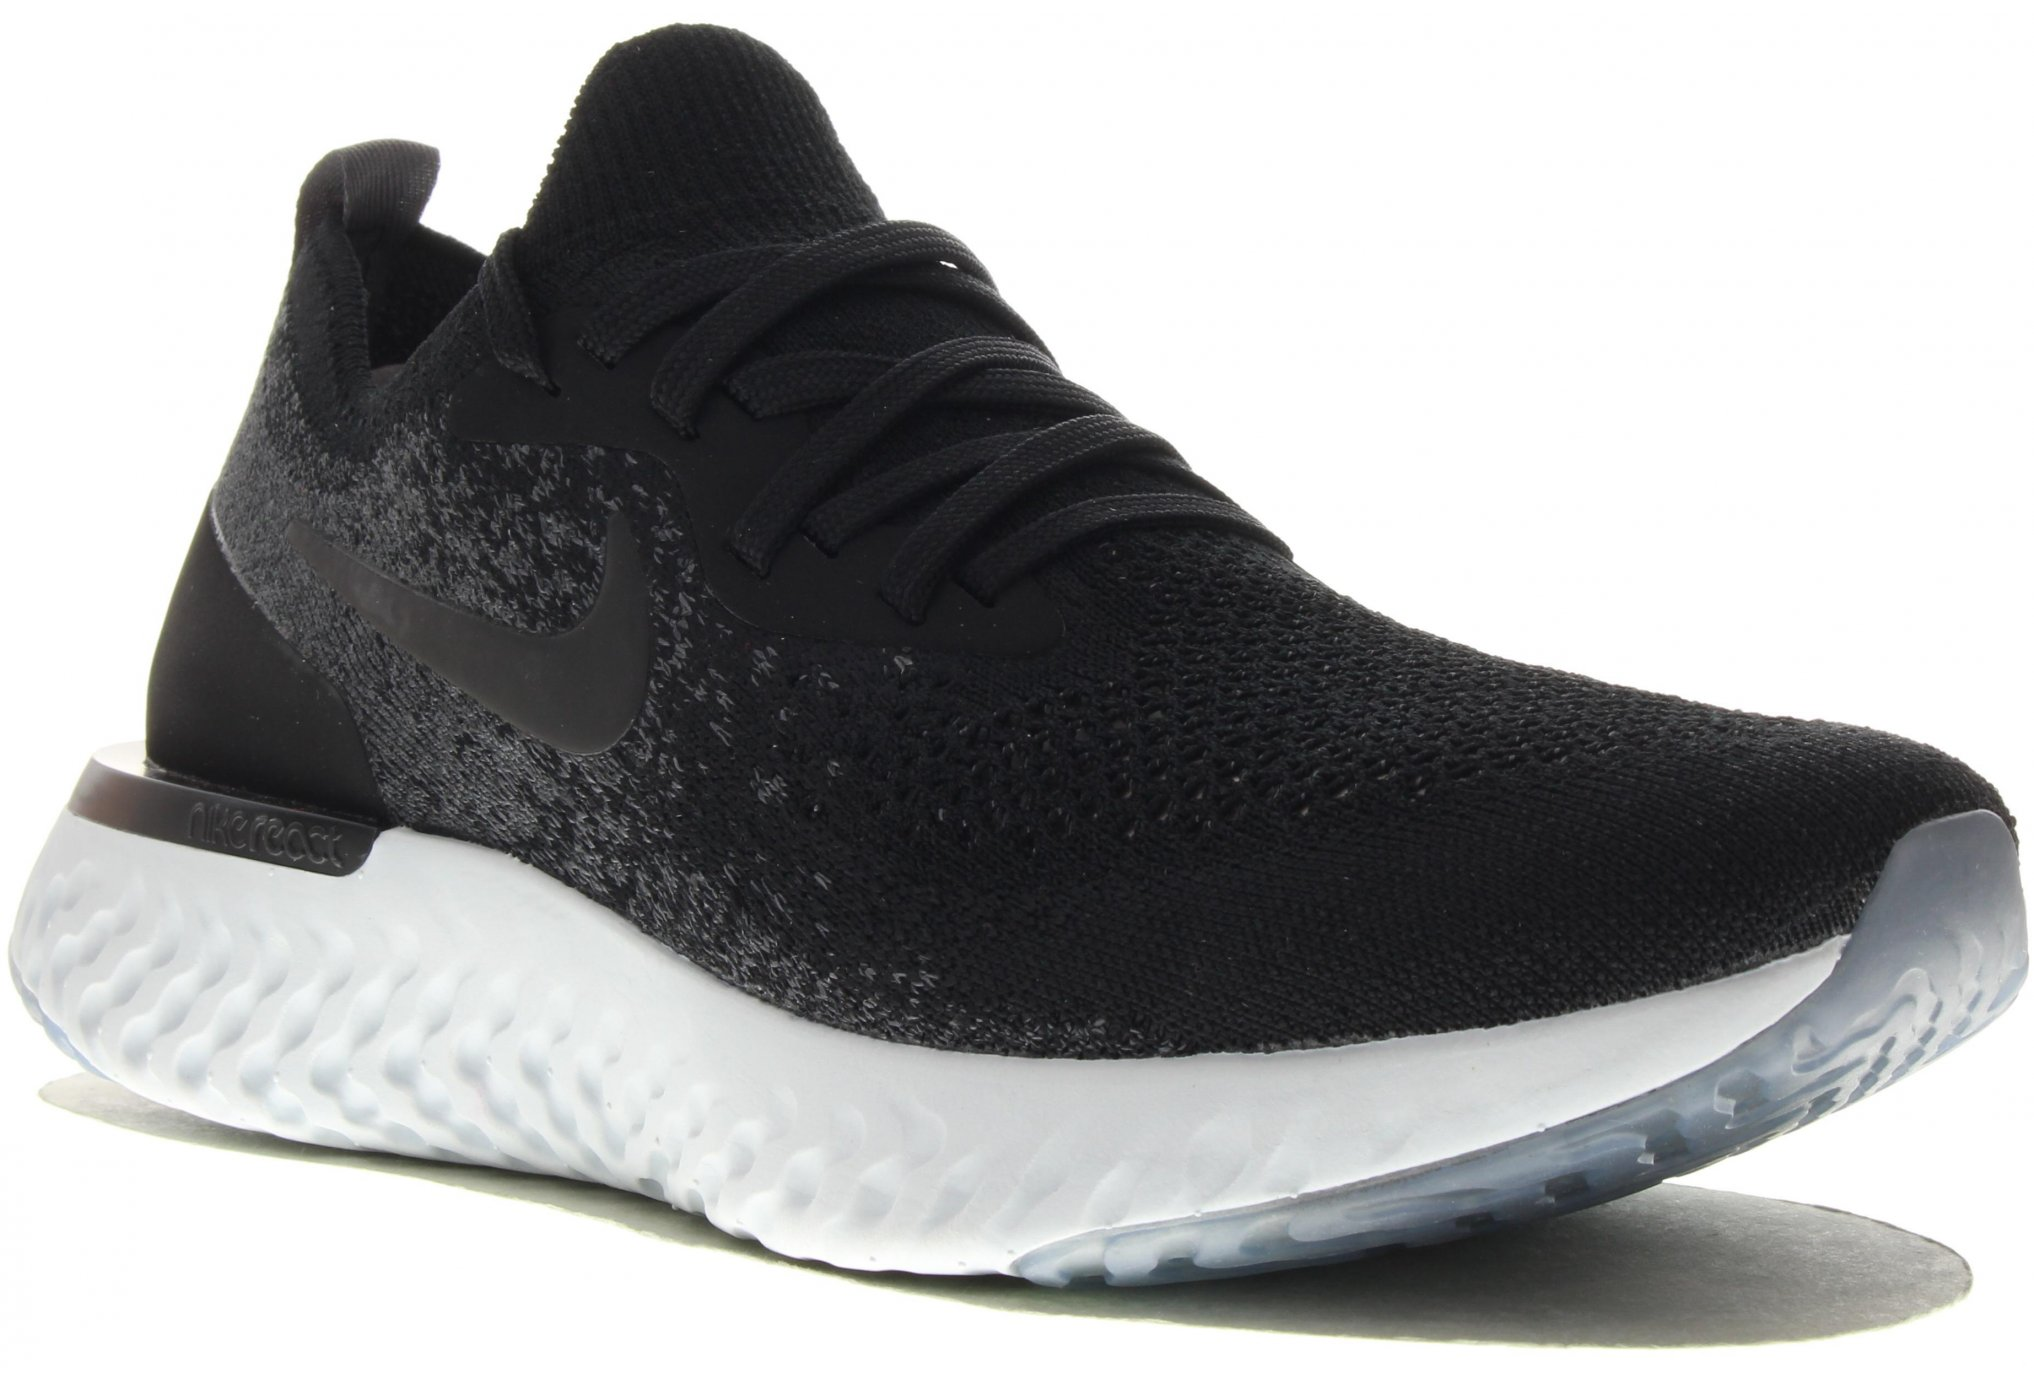 Nike Epic React Flyknit Chaussures running femme